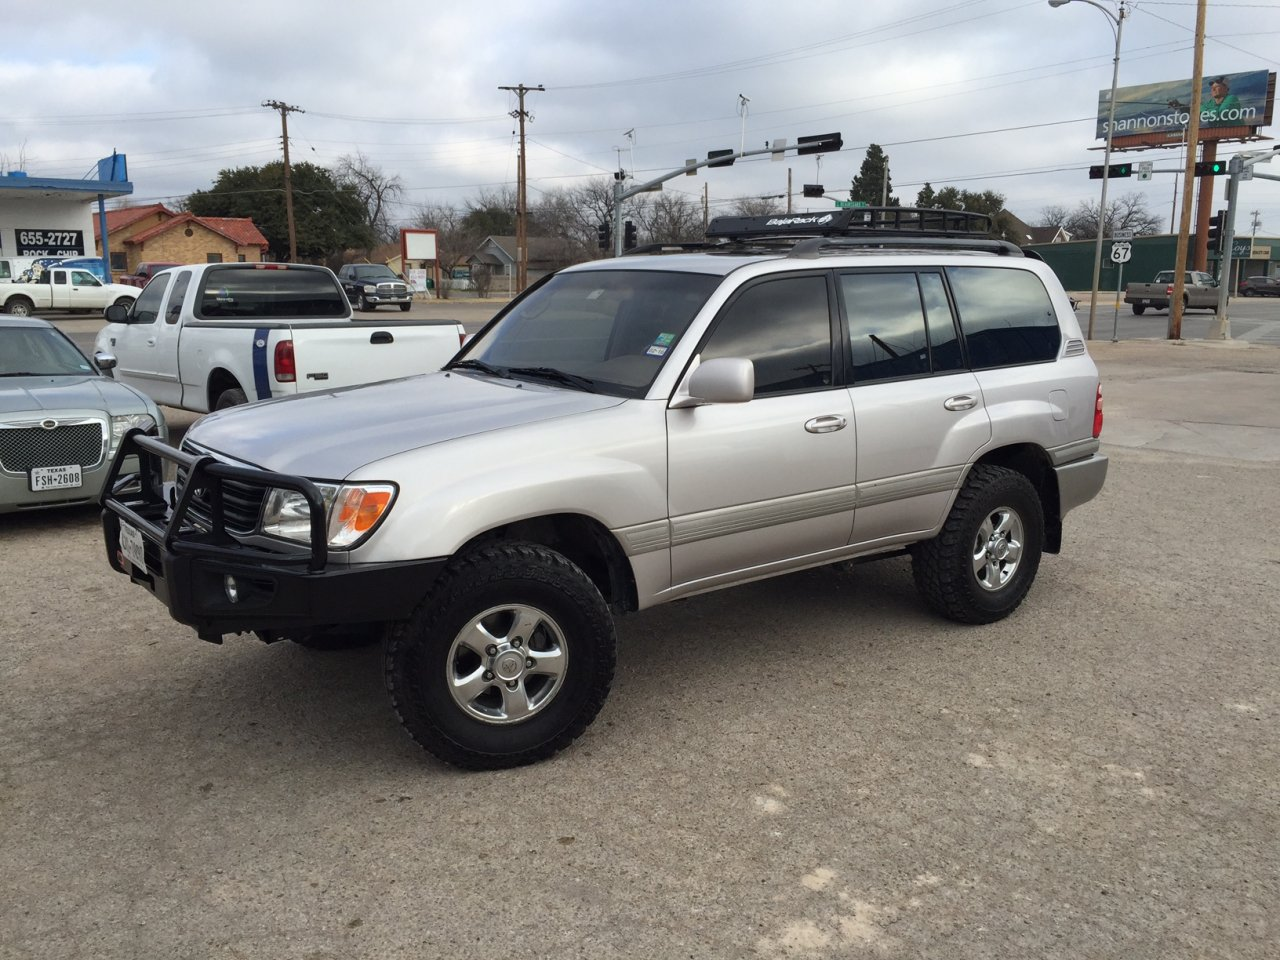 For sale 2001 toyota landcruiser 200 800 miles 11 500 new timing belt and water pump at 178 000 miles cold air conditioning rear heating and air